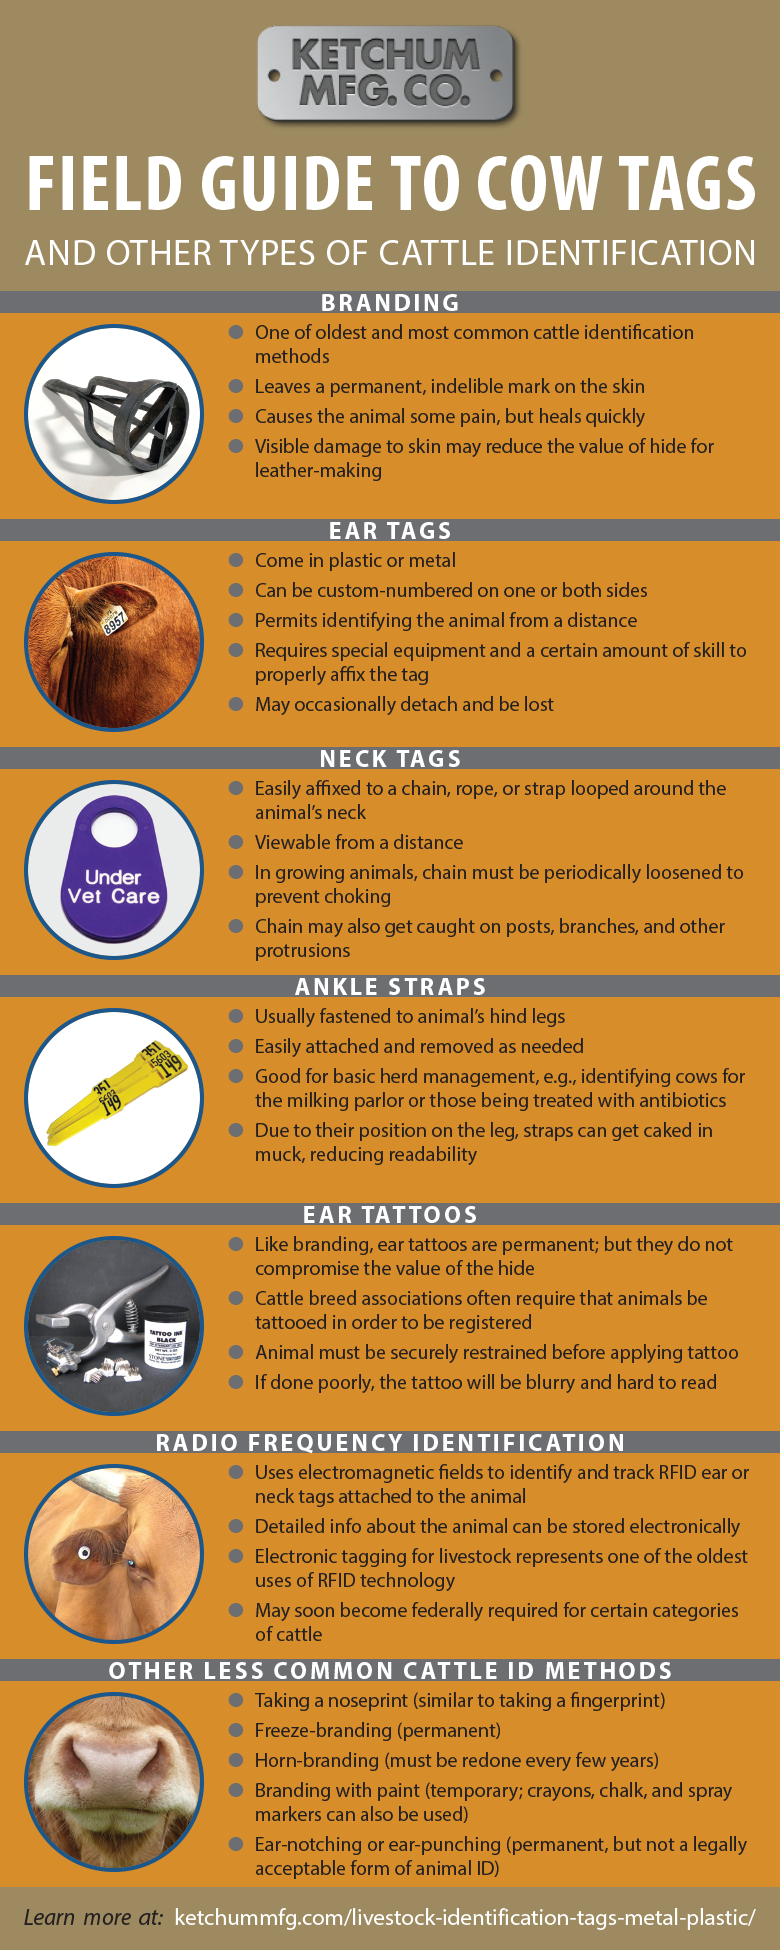 Field Guide to Cow Tags